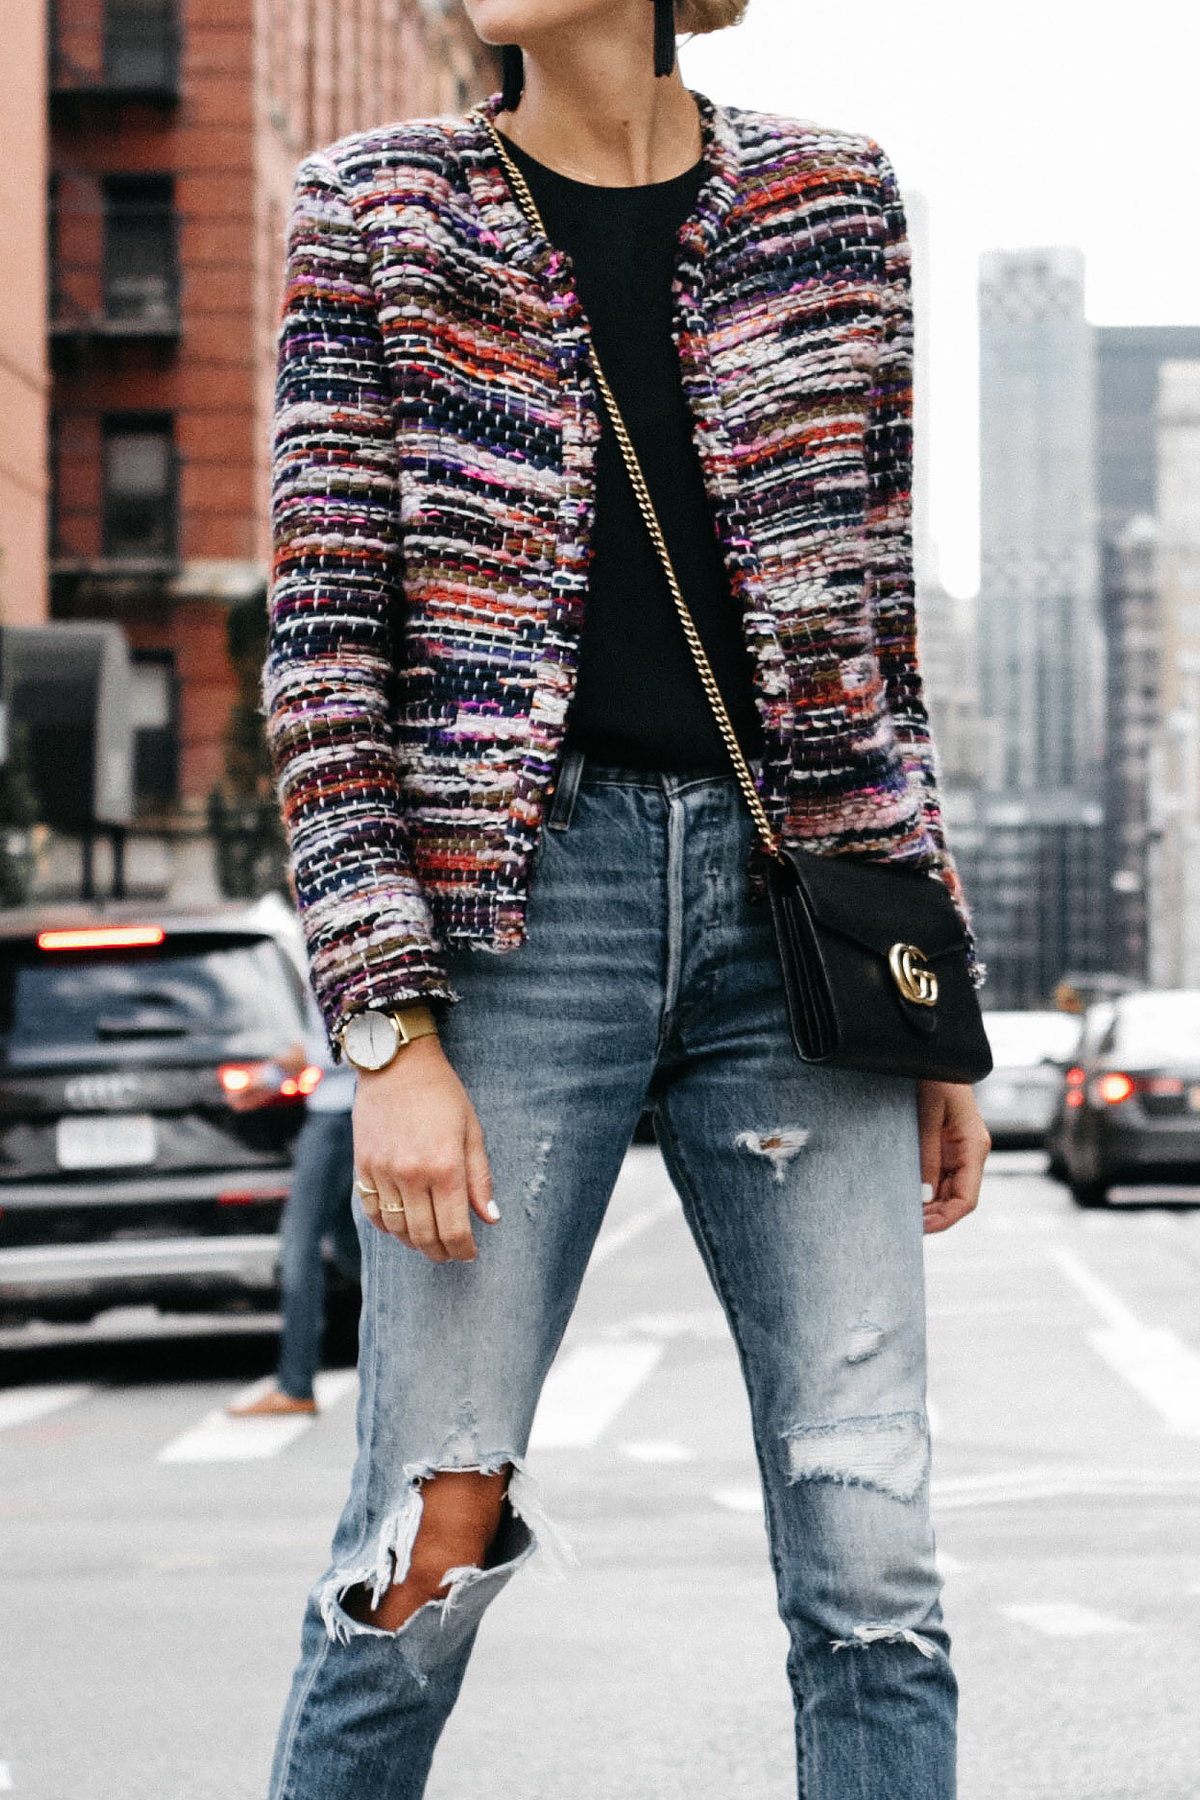 IRO Multicolored Tweed Jacket Gucci Marmont Handbag Denim Ripped Jeans Fashion Jackson Dallas Blogger Fashion Blogger Street Style NYFW